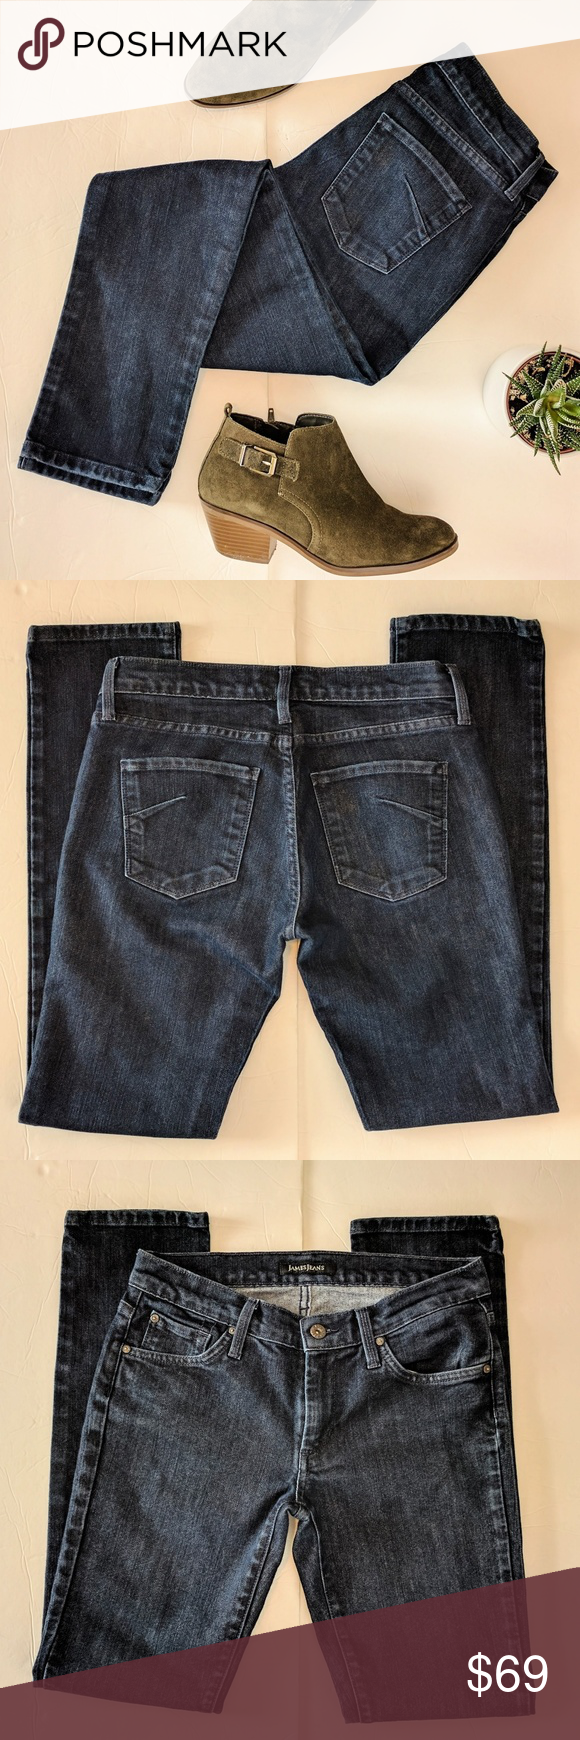 "James Jeans Randi Dark Wash Skinny Jeans Sz 27 These dark wash skinny jeans from Jeans Jeans are in excellent condition.? No size is indicated but they measure approx 14.5"" across the waist, 18"" across the thighs, 7.5"" rise, 31"" inseam, 12"" leg opening. 60% cotton, 40% expand. James Jeans Jeans Skinny"